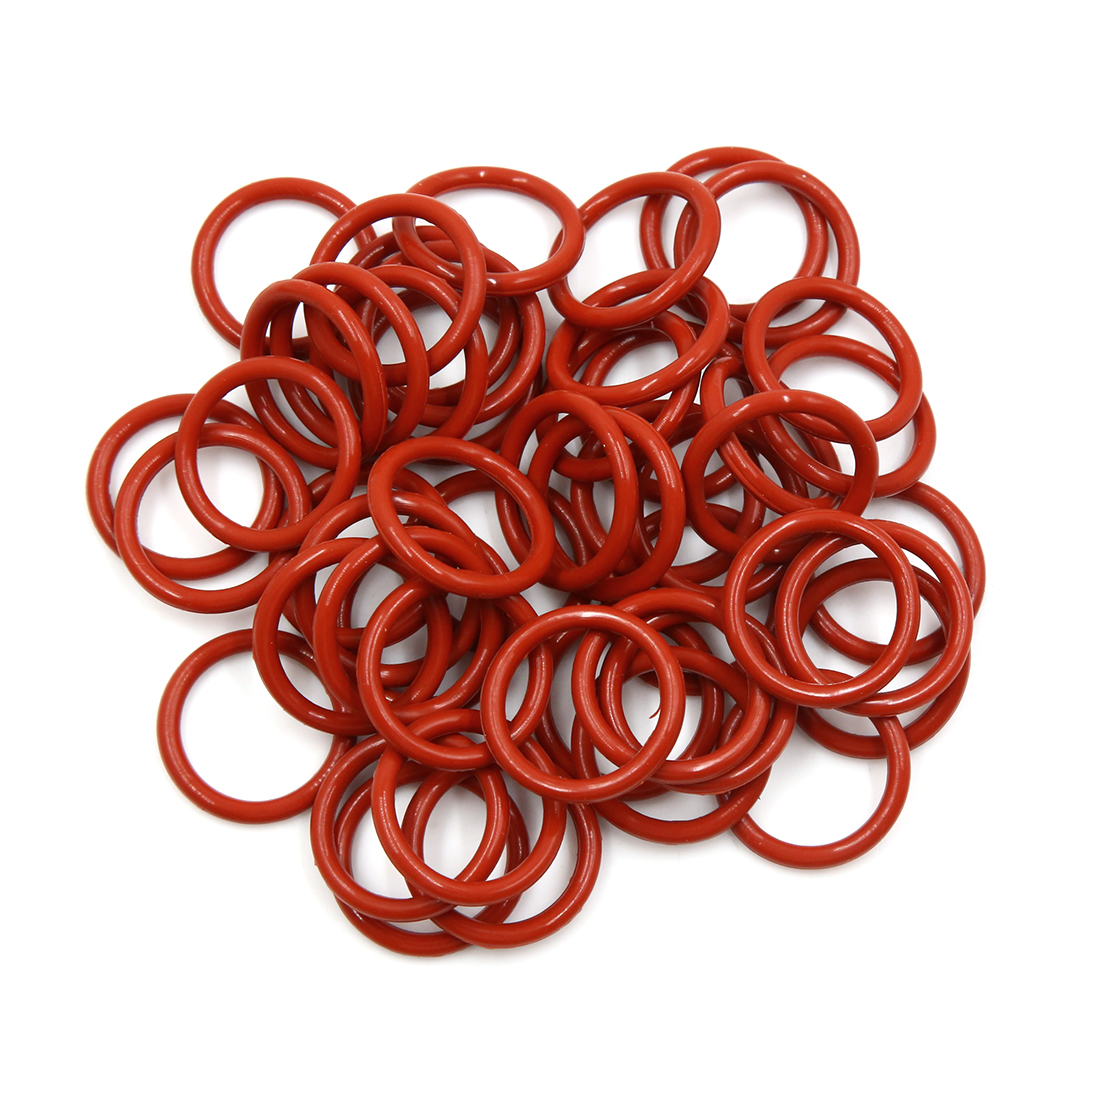 50pcs Brown Silicone Rubber O-Ring VMQ Seal Gasket Washer for Car 27mm x 3.1mm